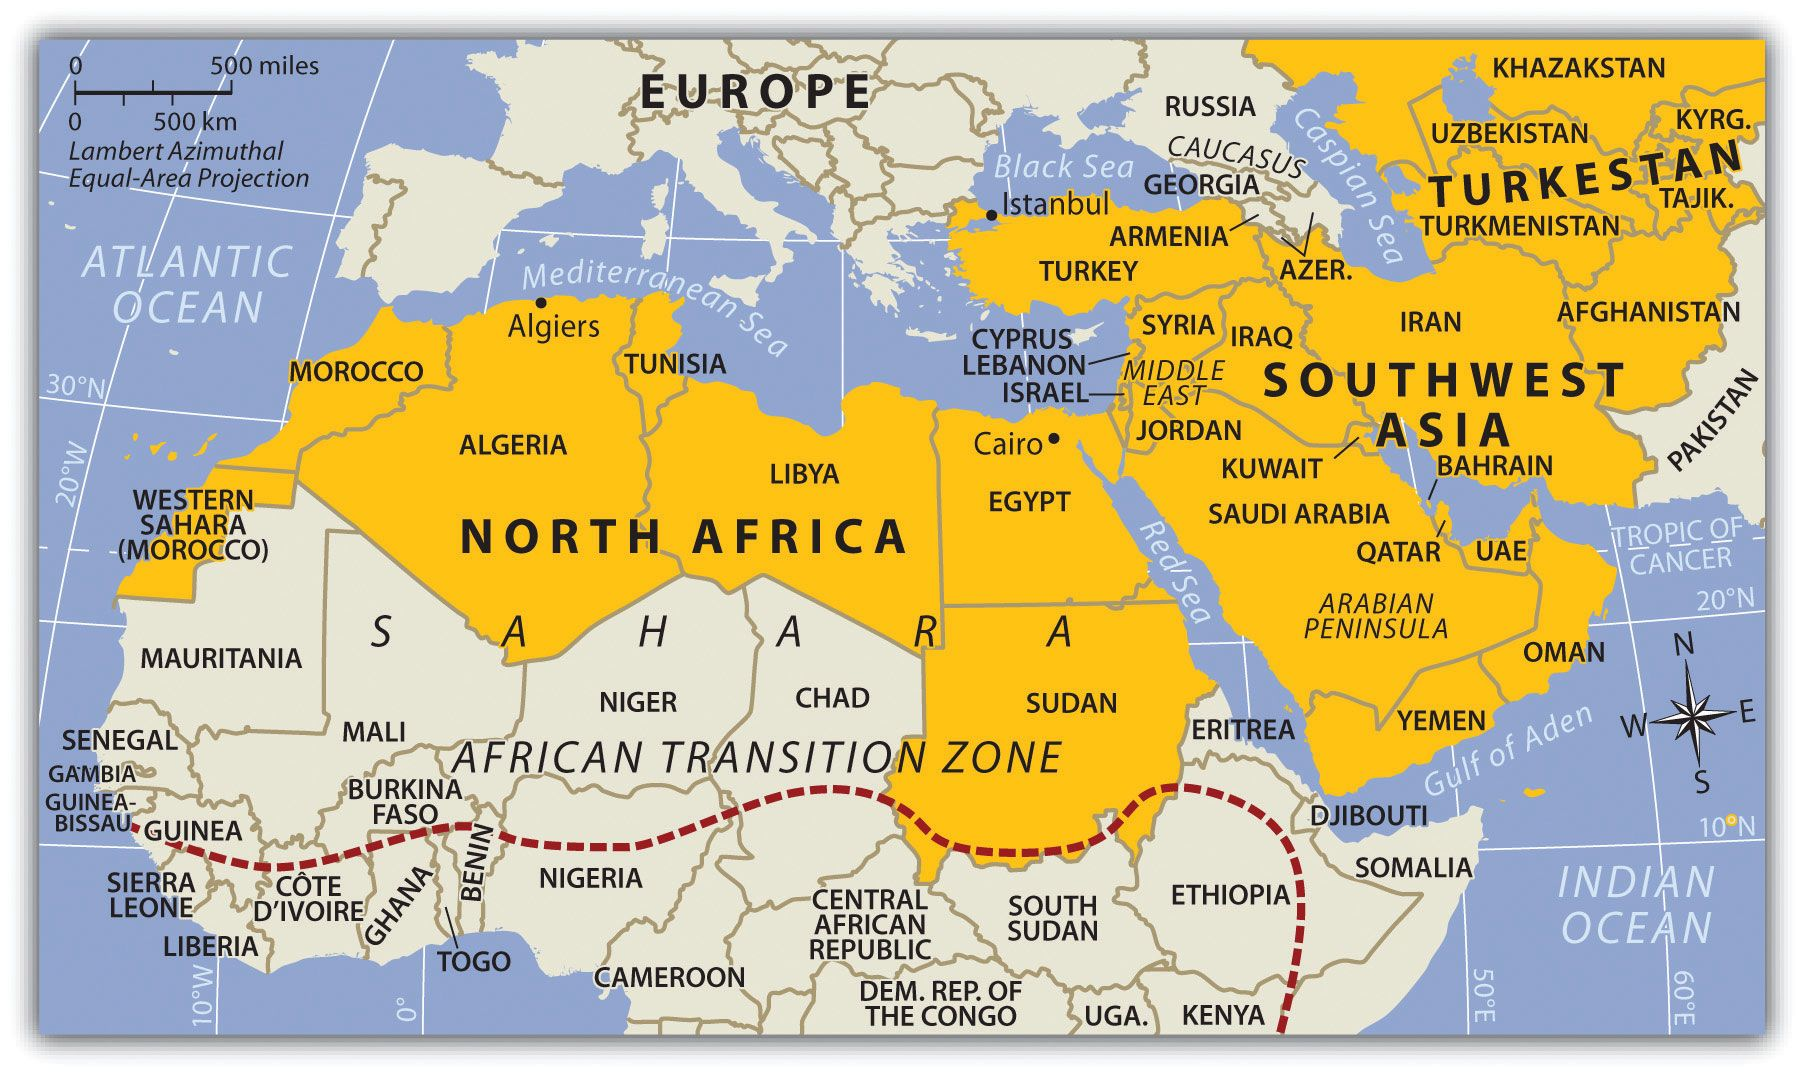 Southwest Asia And North Africa Map North Africa and Southwest Asia | African countries map, Asia map